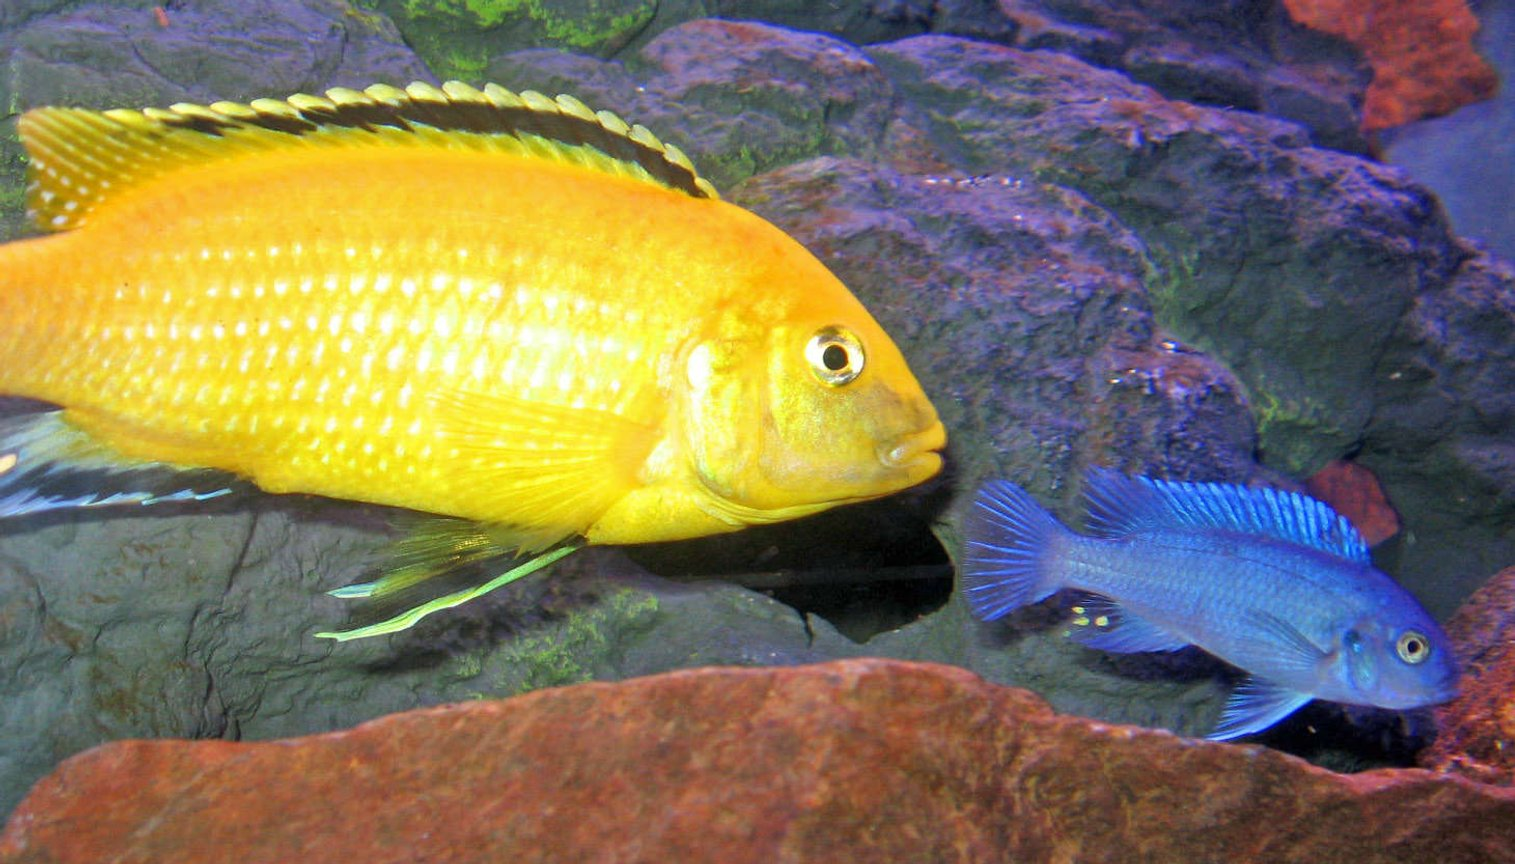 freshwater fish - labidochromis caeruleus - electric yellow cichlid stocking in 46 gallons tank - Powder Blue with Lemon Lab